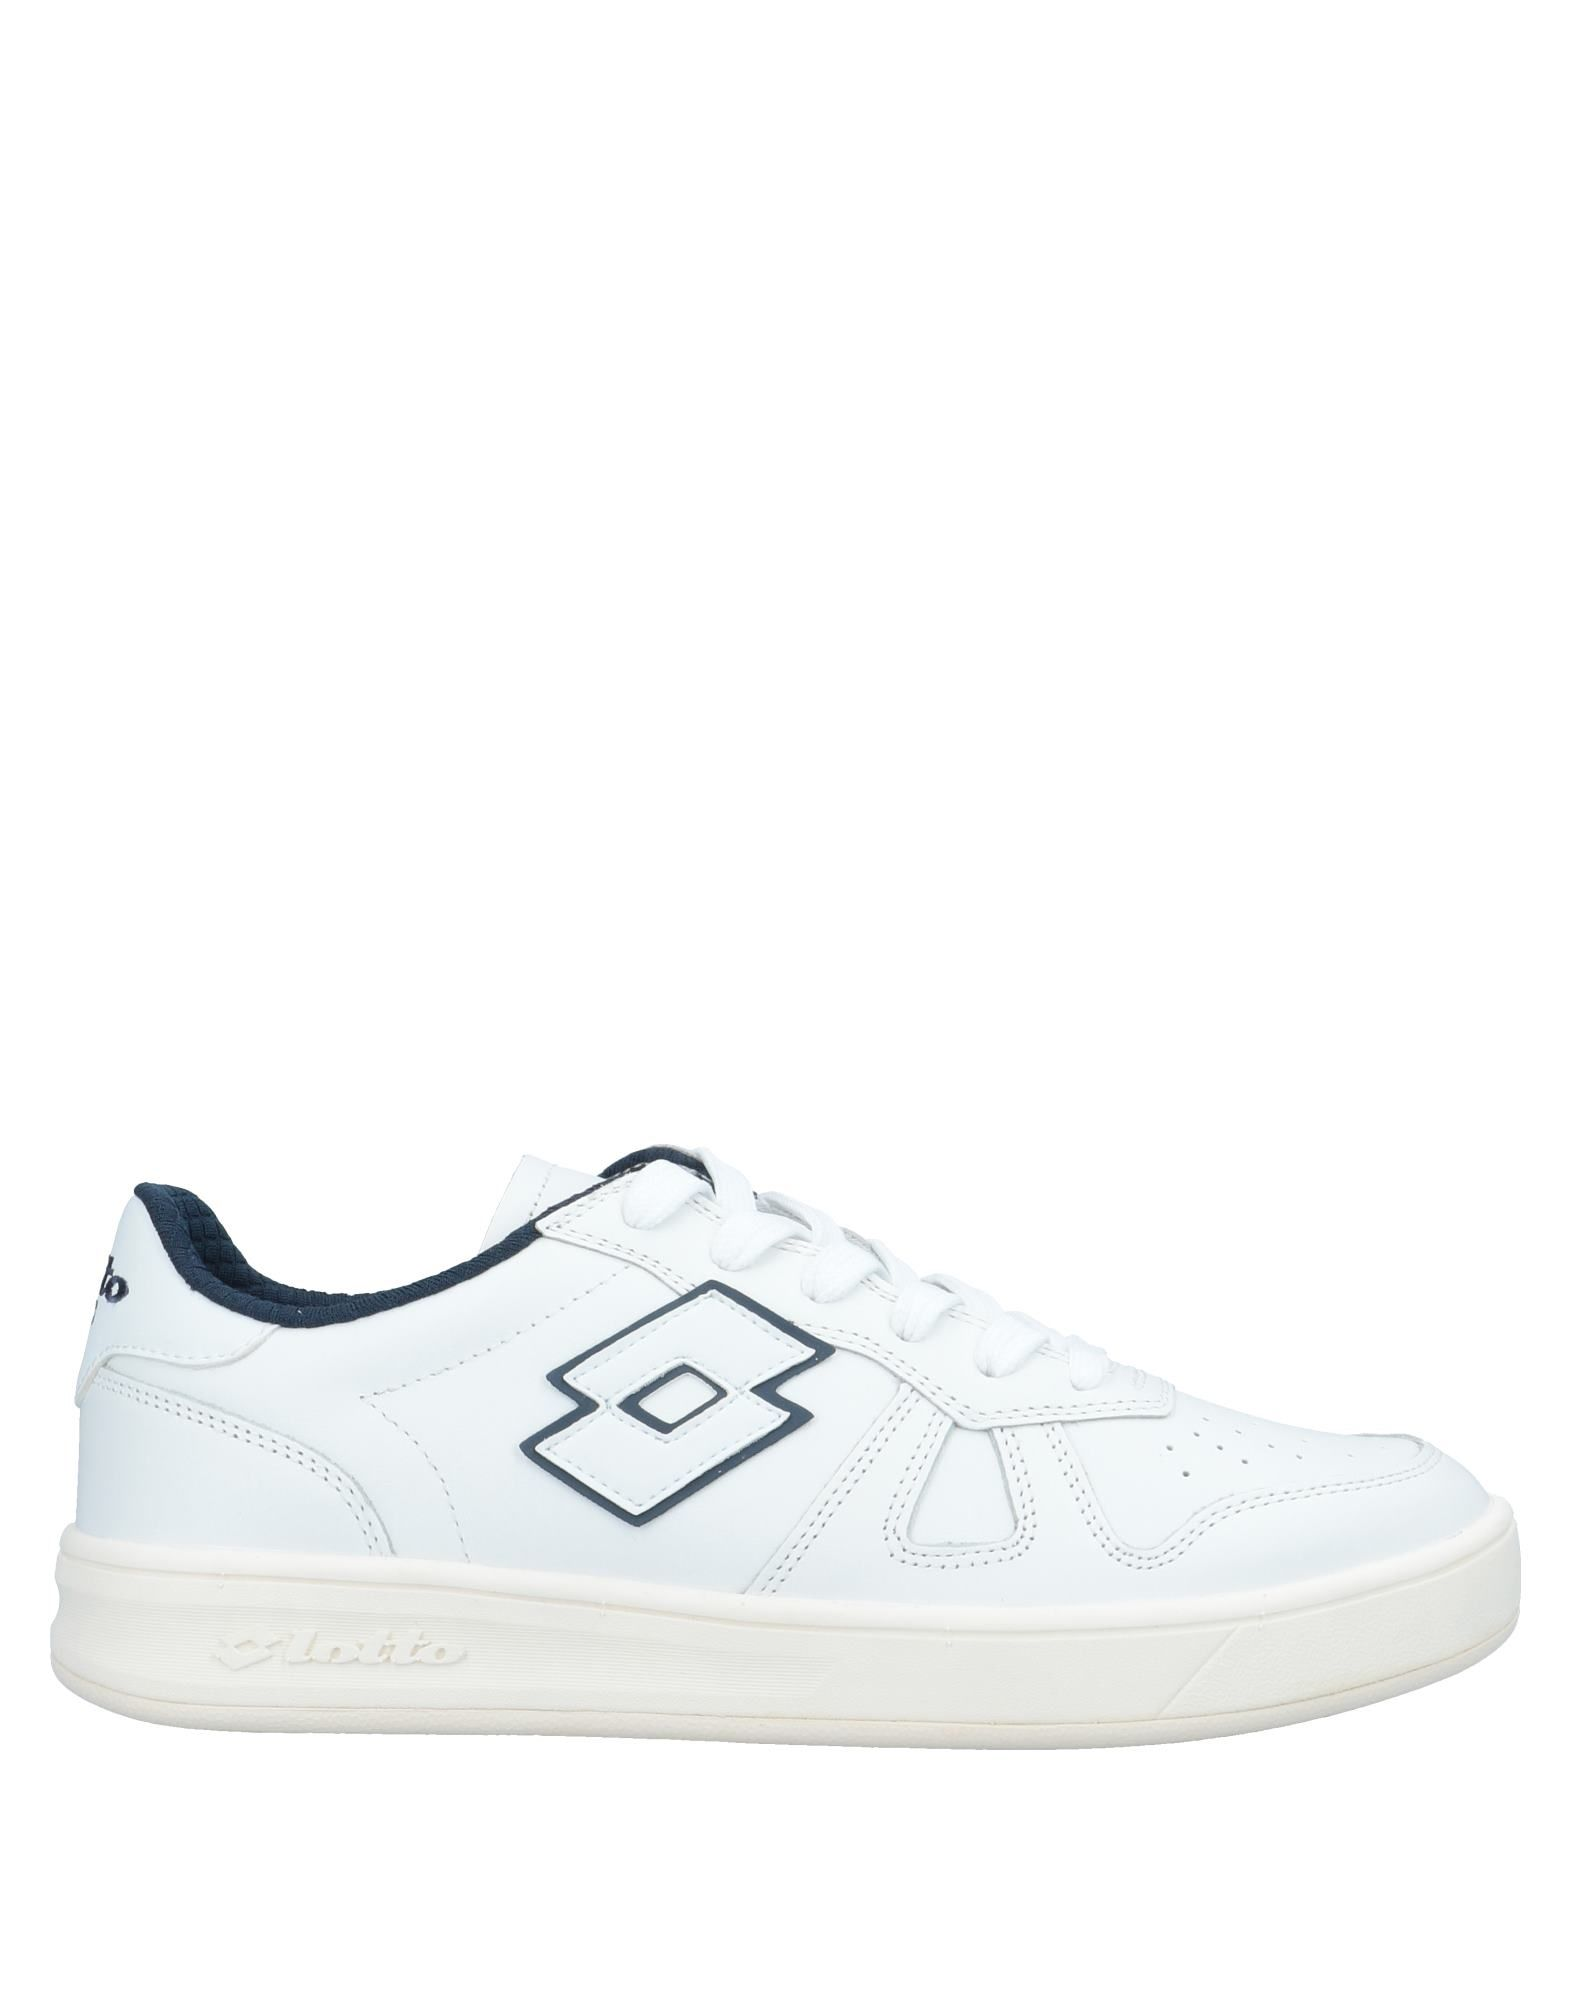 Zapatillas Lotto Leggda Leggda Lotto Hombre - Zapatillas Lotto Leggda  Blanco 9f95bb